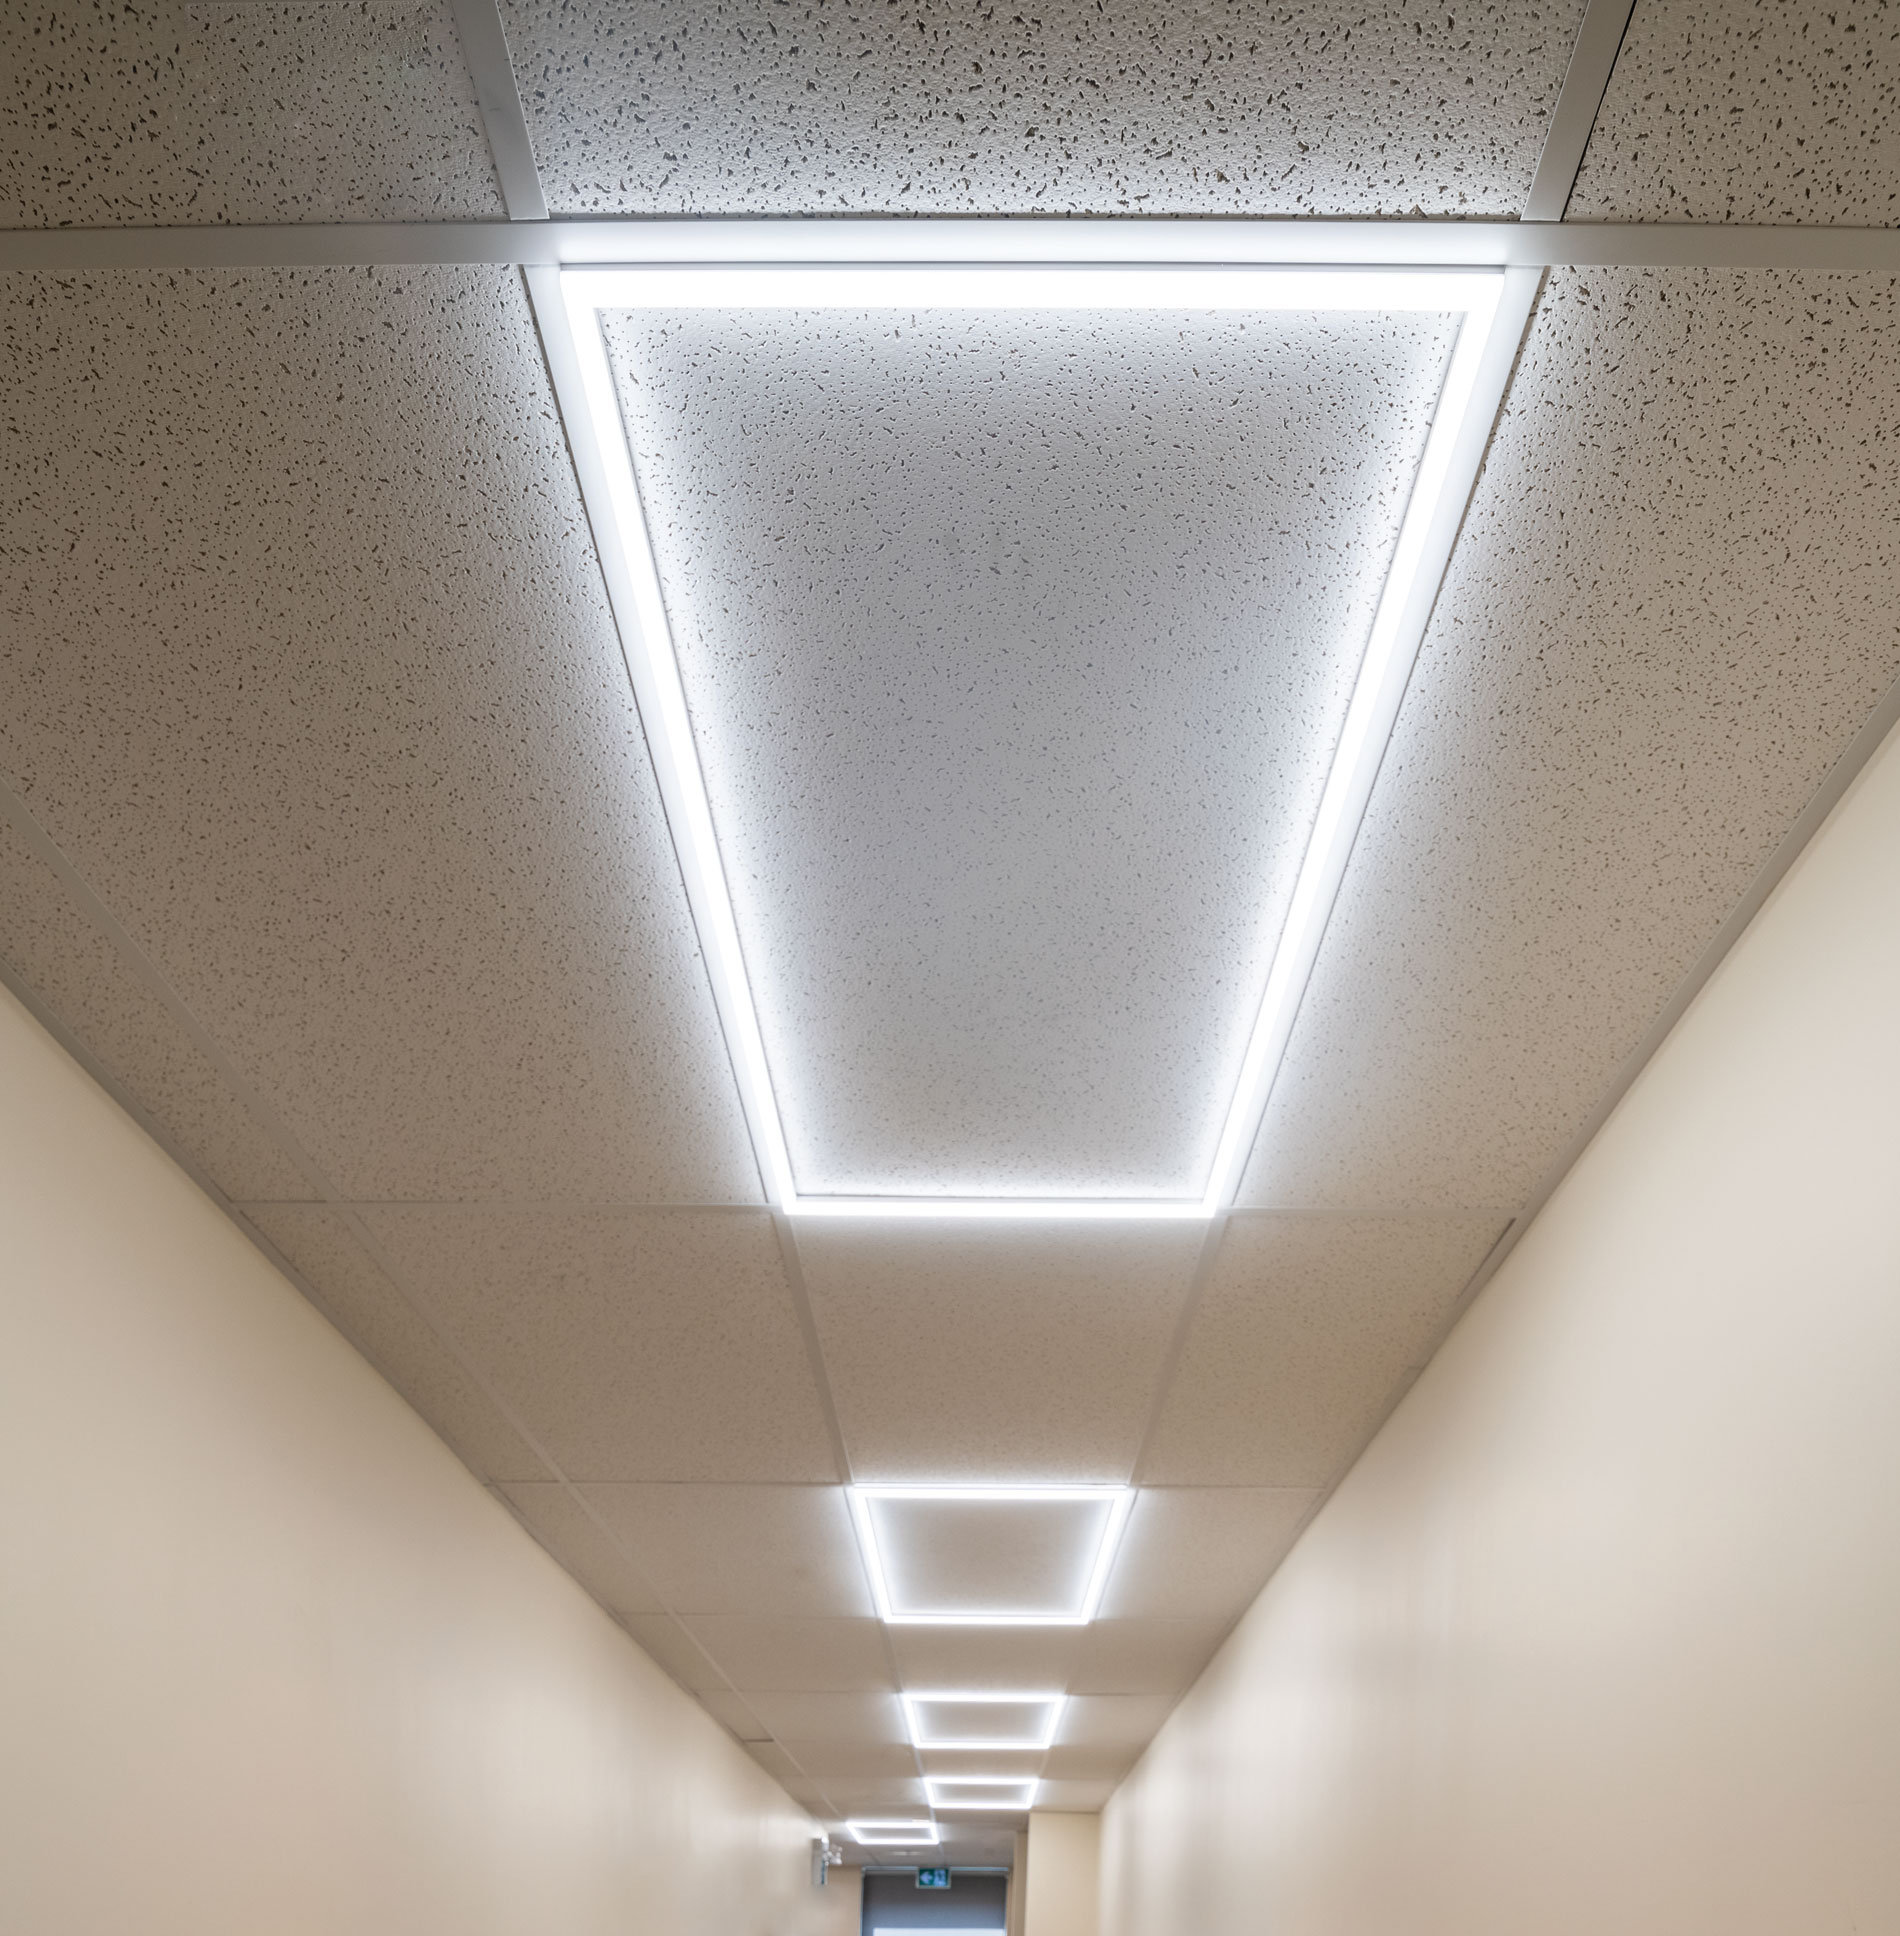 2 x 4 edge lit led panel by national specialty lighting tle 2x4 55 30